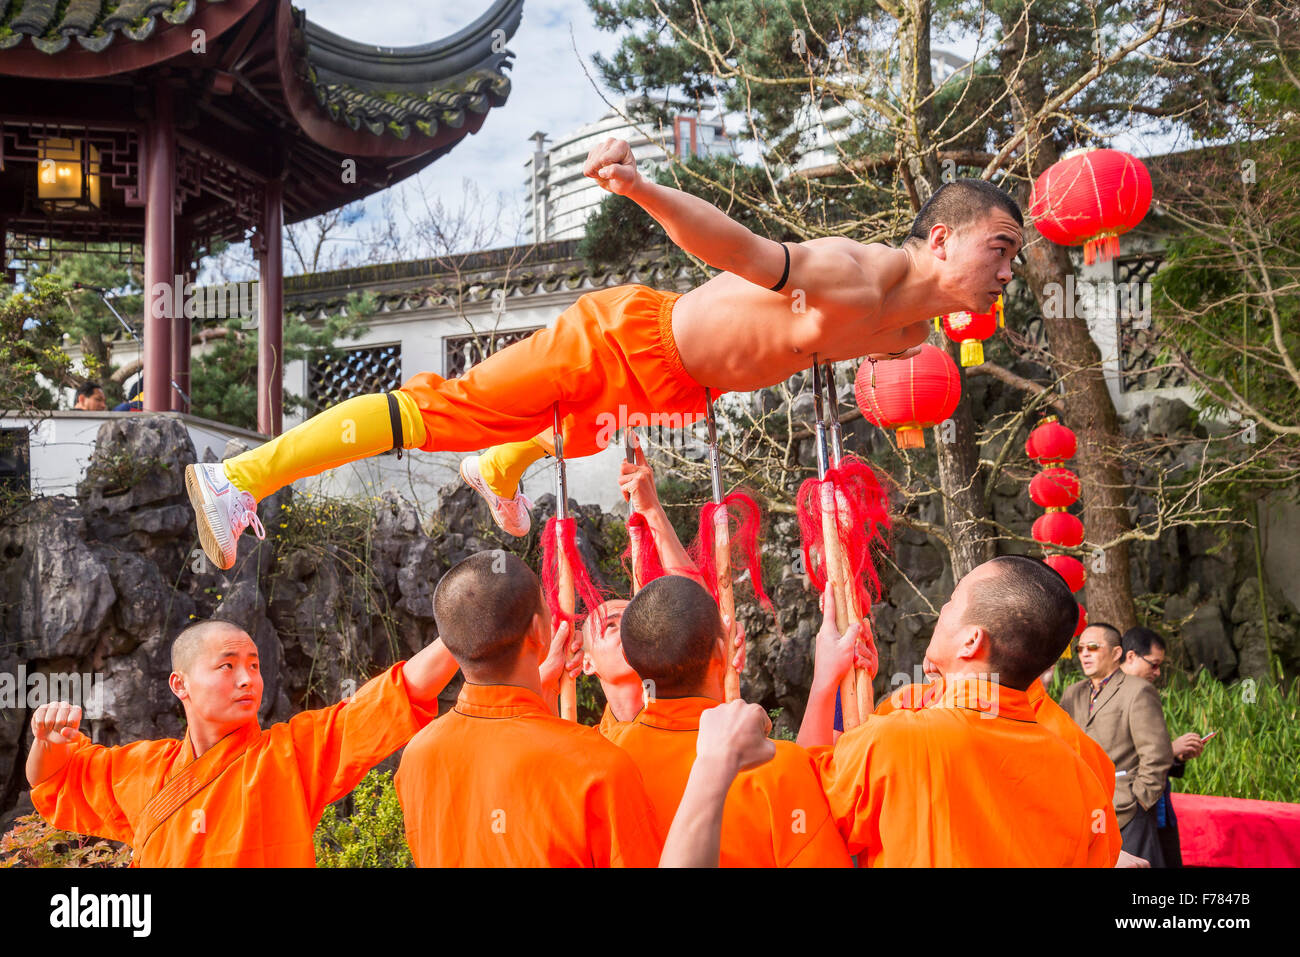 Triumph over Pain, Five Spears Demonstration performance by Shaoliin monks, Dr. Sun Yat Sen Classical Chinese Garden, - Stock Image